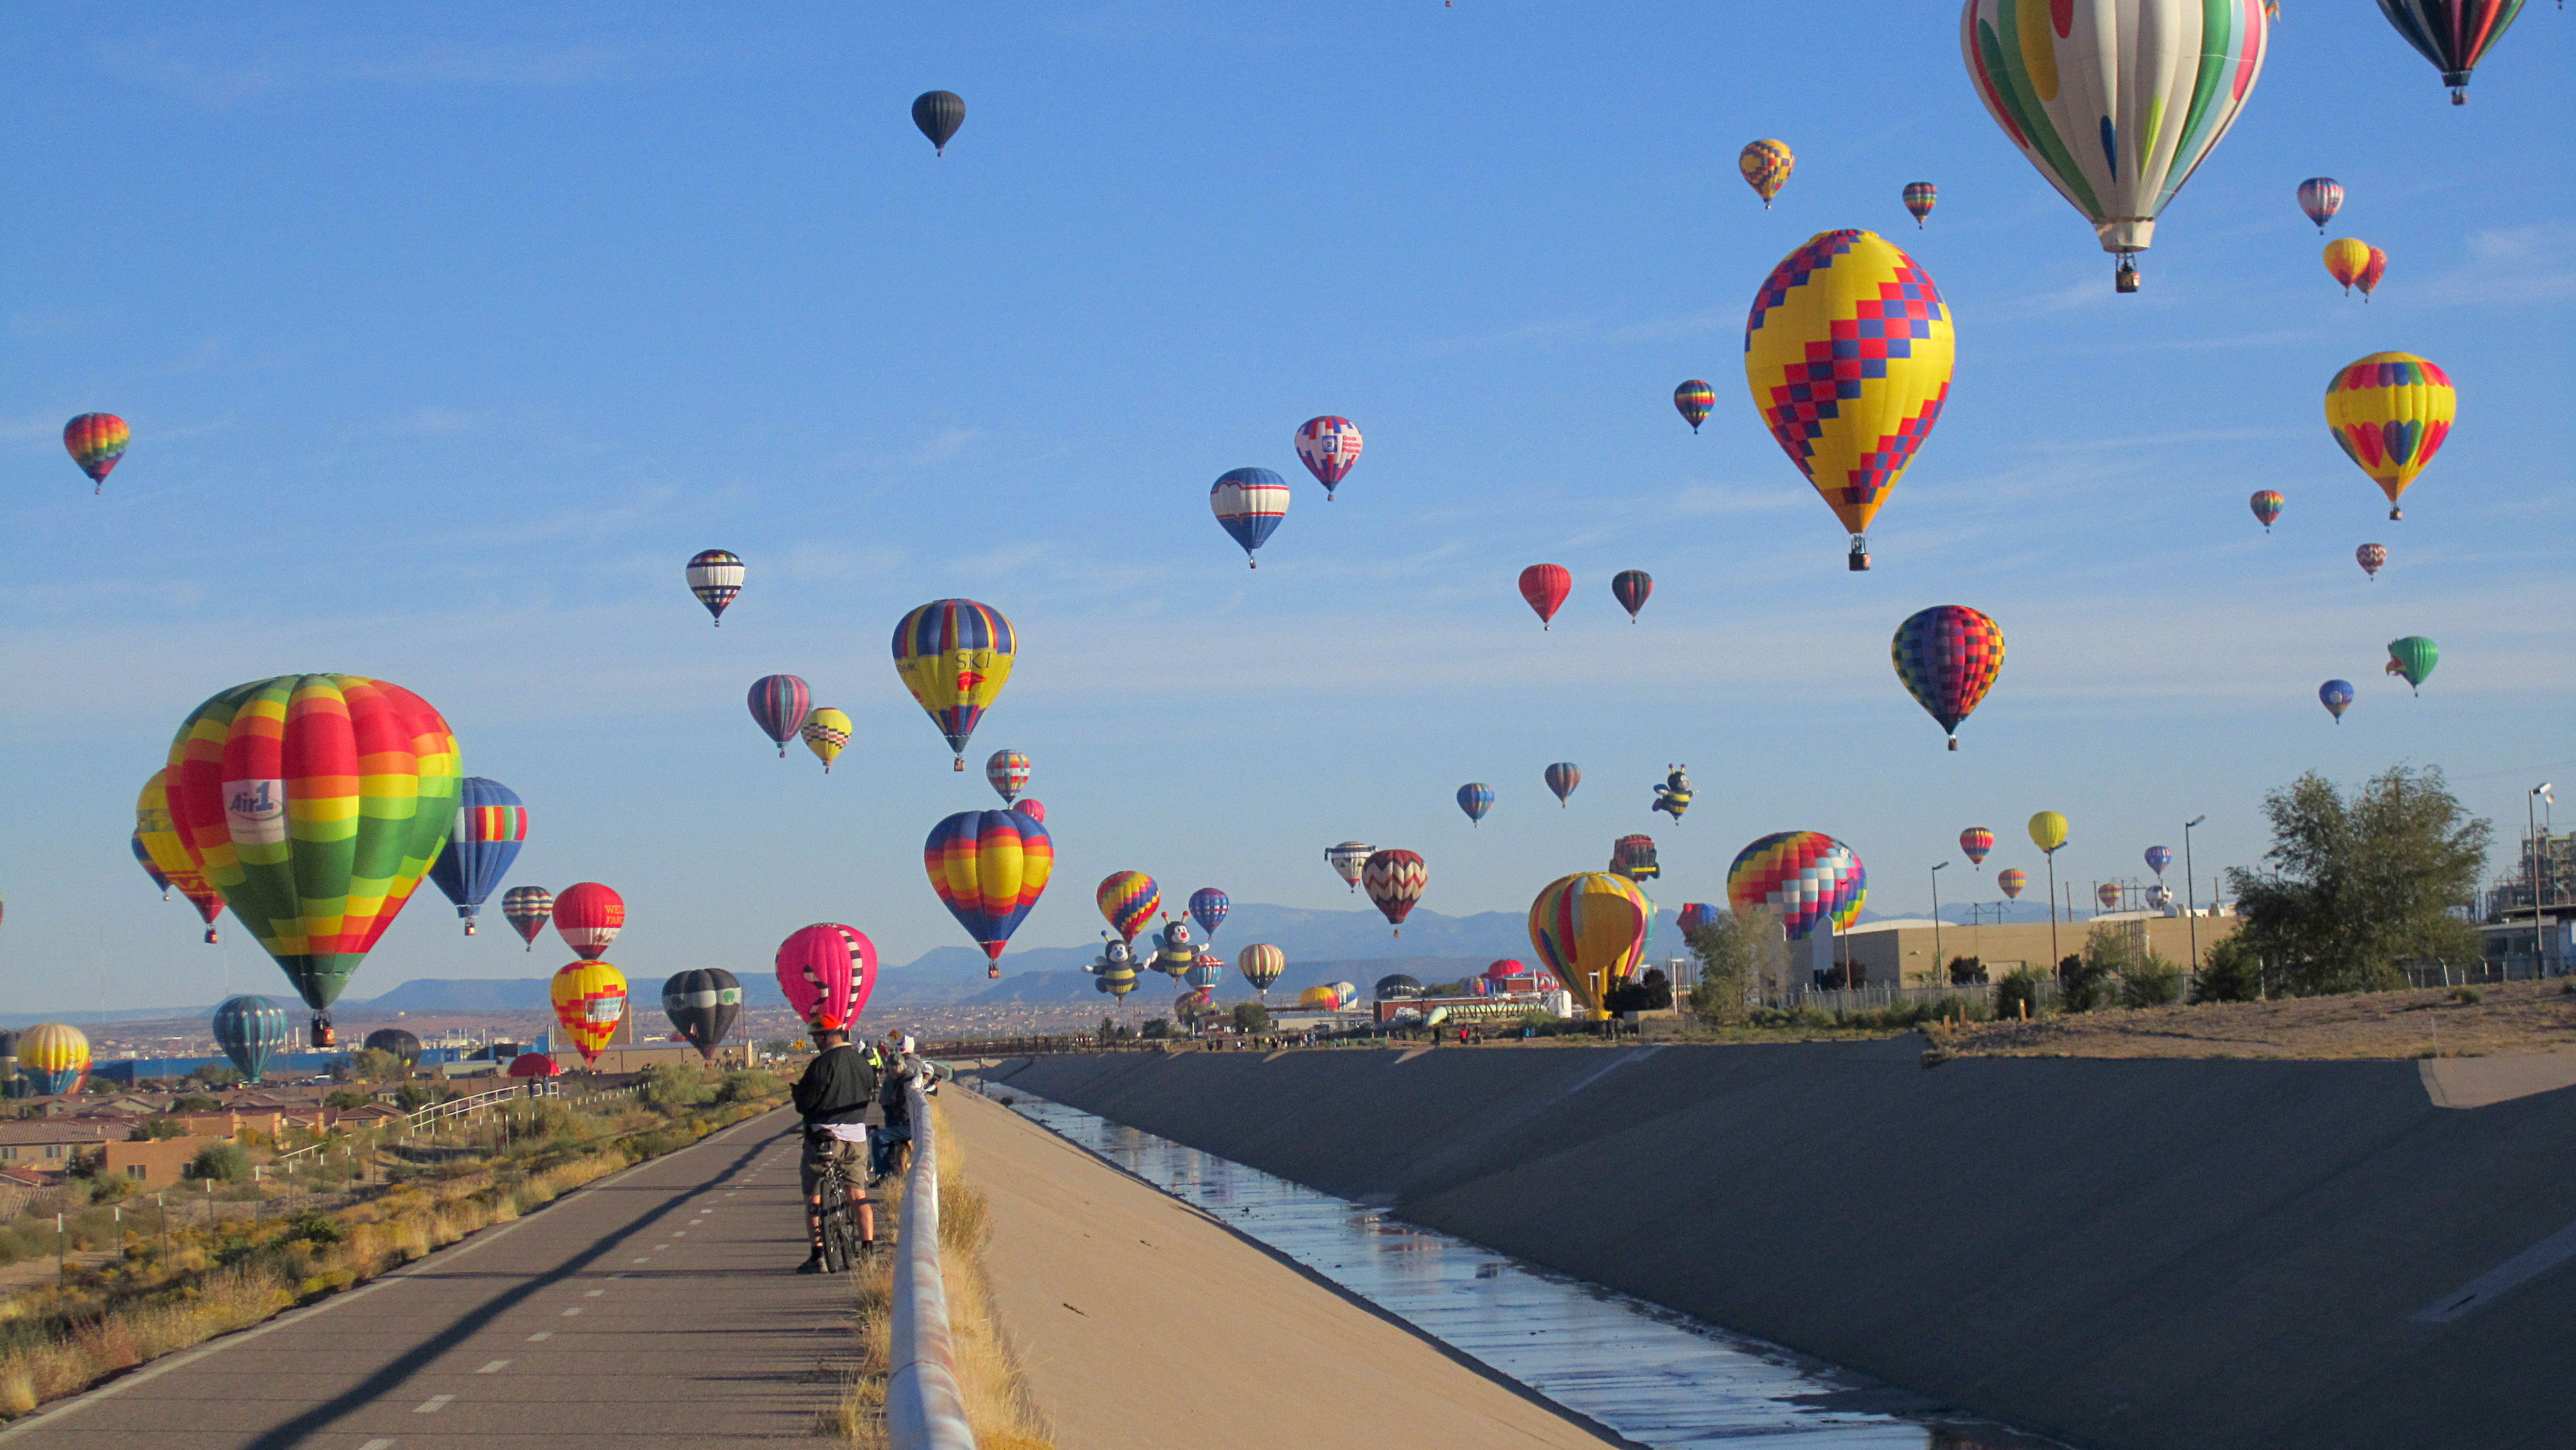 hot air balloon and odd jobs 53 hot air balloon jobs available see salaries, compare reviews, easily apply, and get hired new hot air balloon careers are added daily on simplyhiredcom the low-stress way to find your next hot air balloon job opportunity is on simply hired.